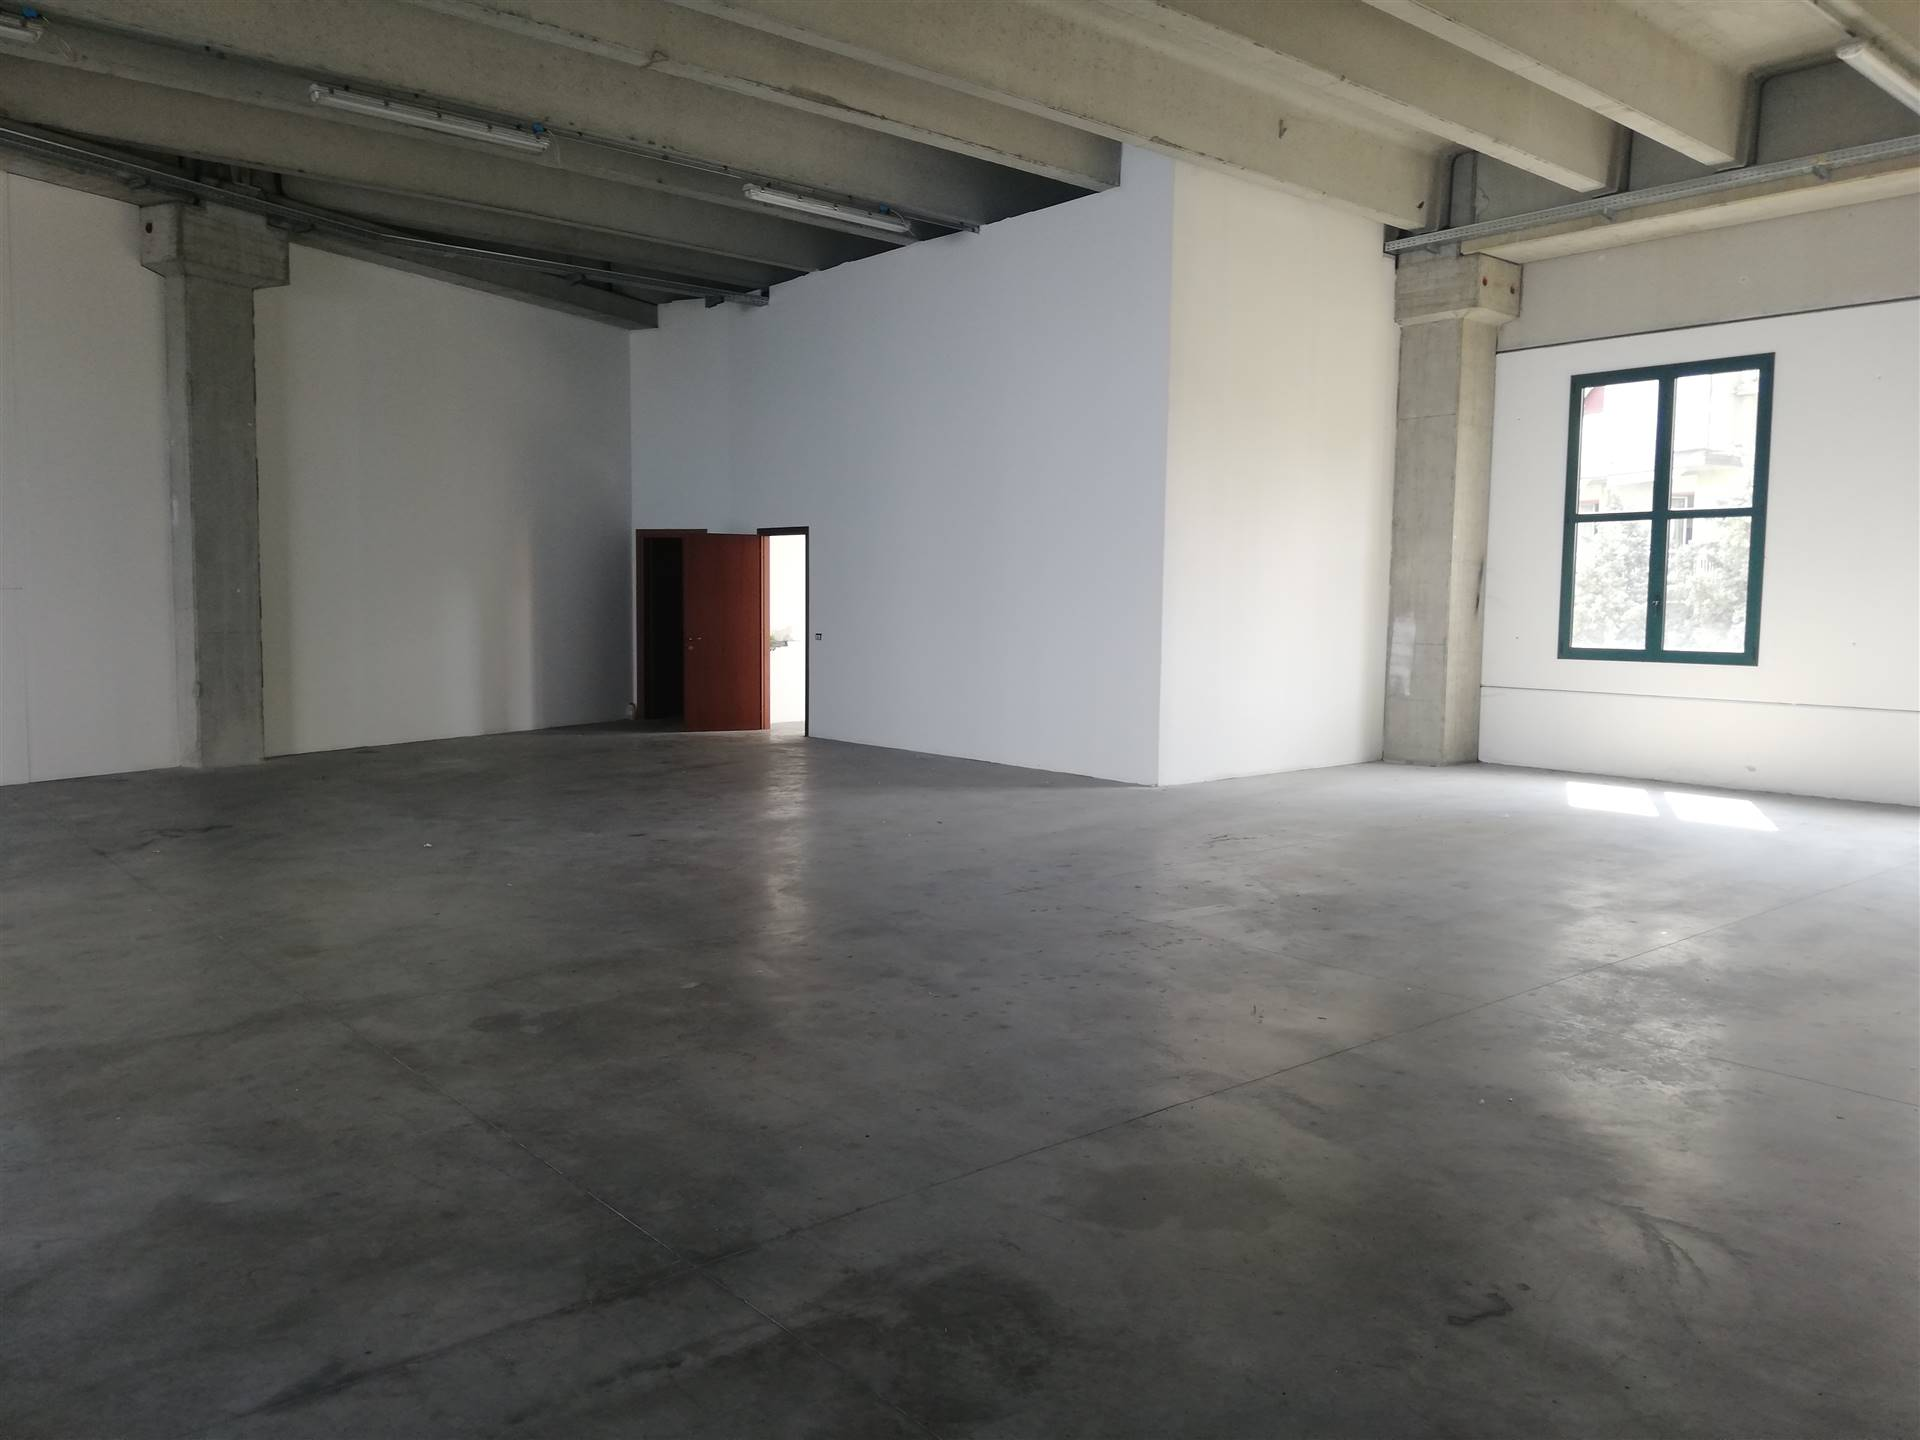 CERNUSCO SUL NAVIGLIO, Laboratory for rent of 340 Sq. mt., Excellent Condition, Heating Non-existent, Energetic class: G, placed at 1° on 1, composed